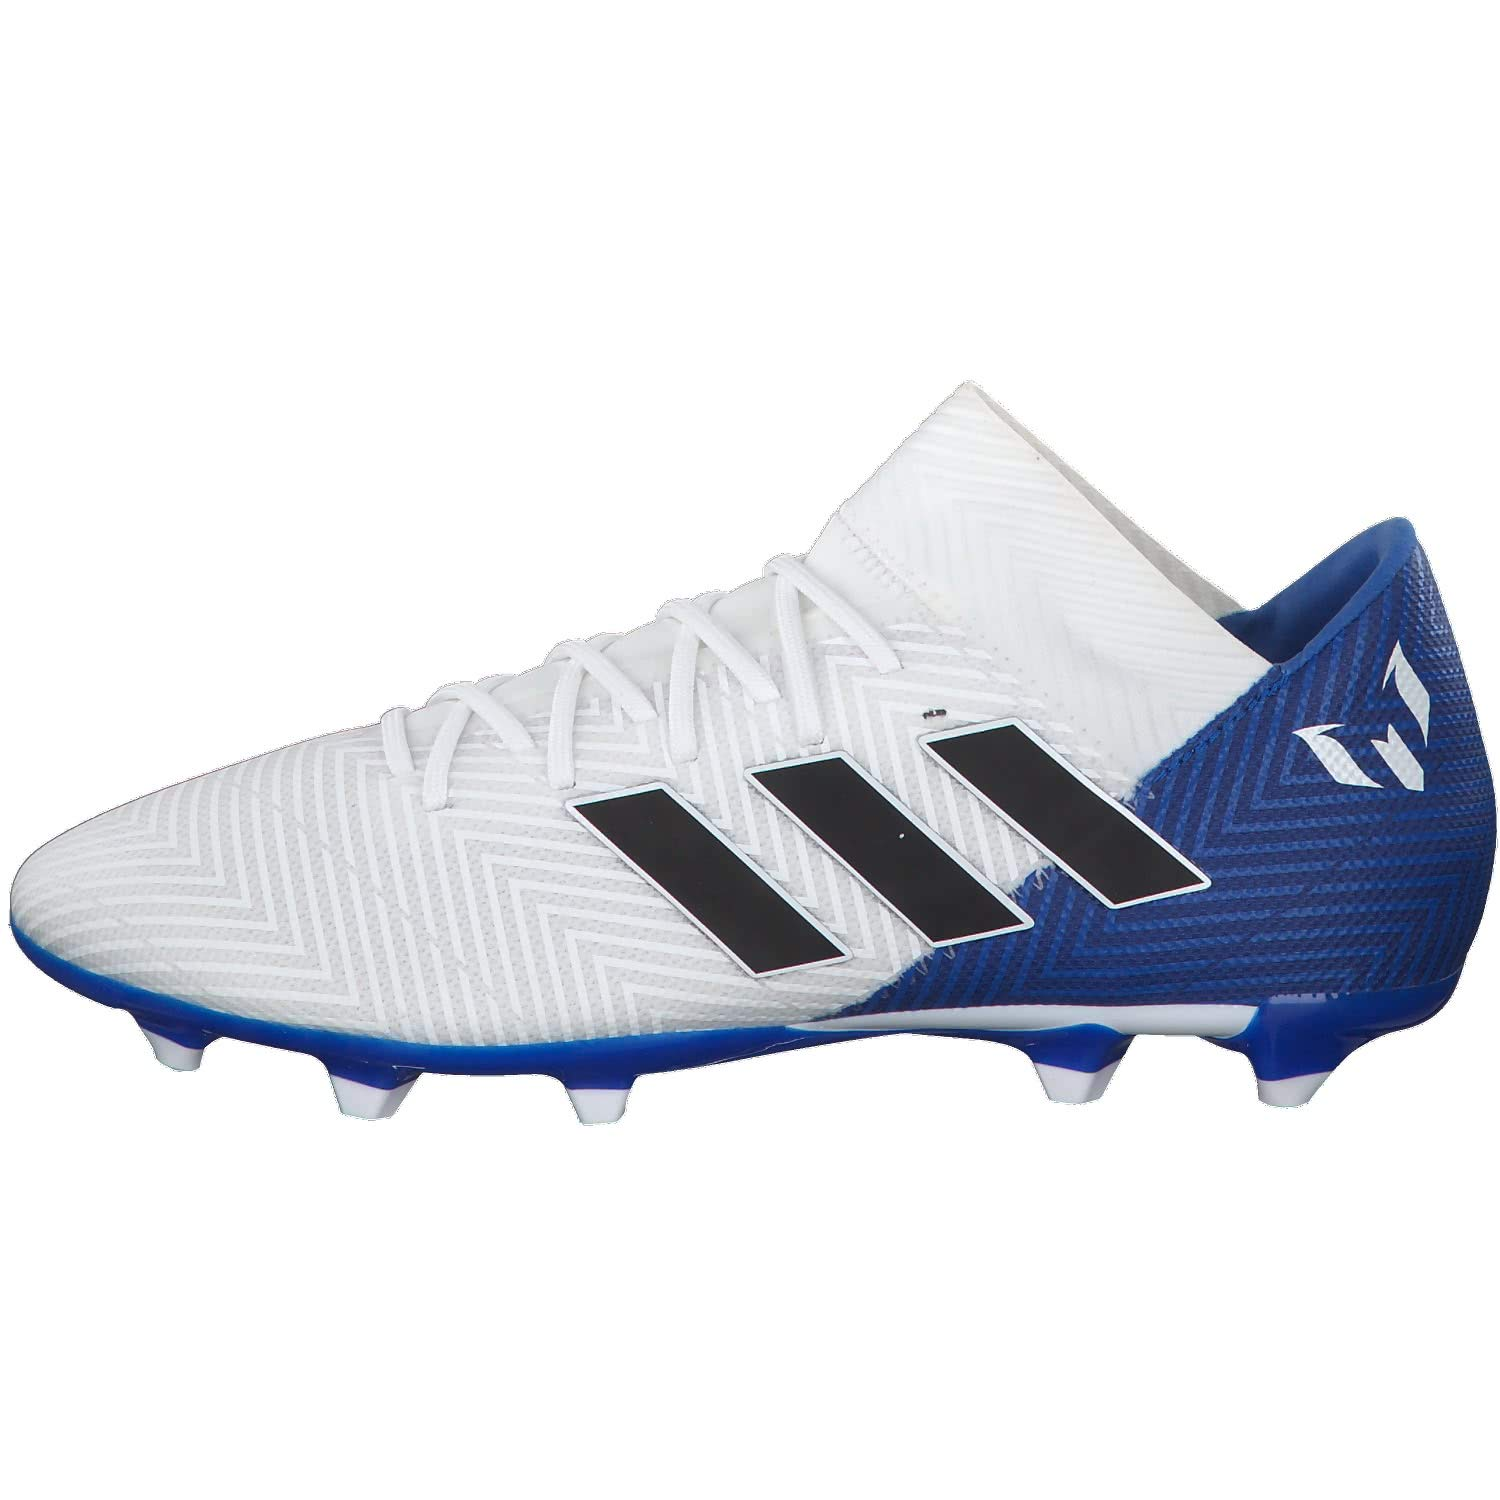 separation shoes 8d2c6 129cb Adidas Nemeziz Messi 18.3 Fg, Scarpe da Calcio Uomo DB2111 ingrandisci